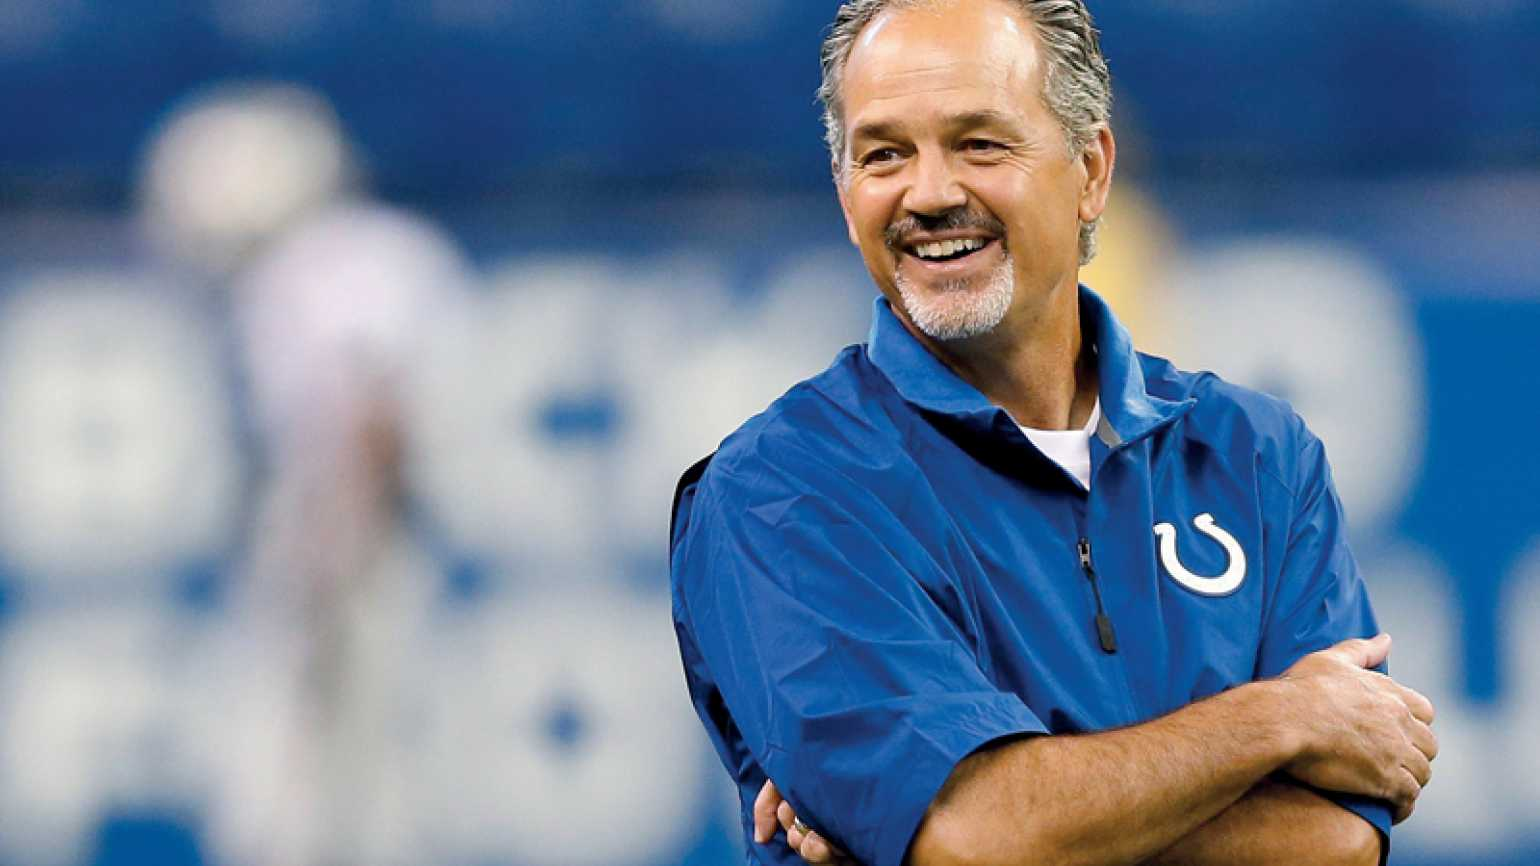 Coach Pagano returns to the field after a victorious battle with cancer.